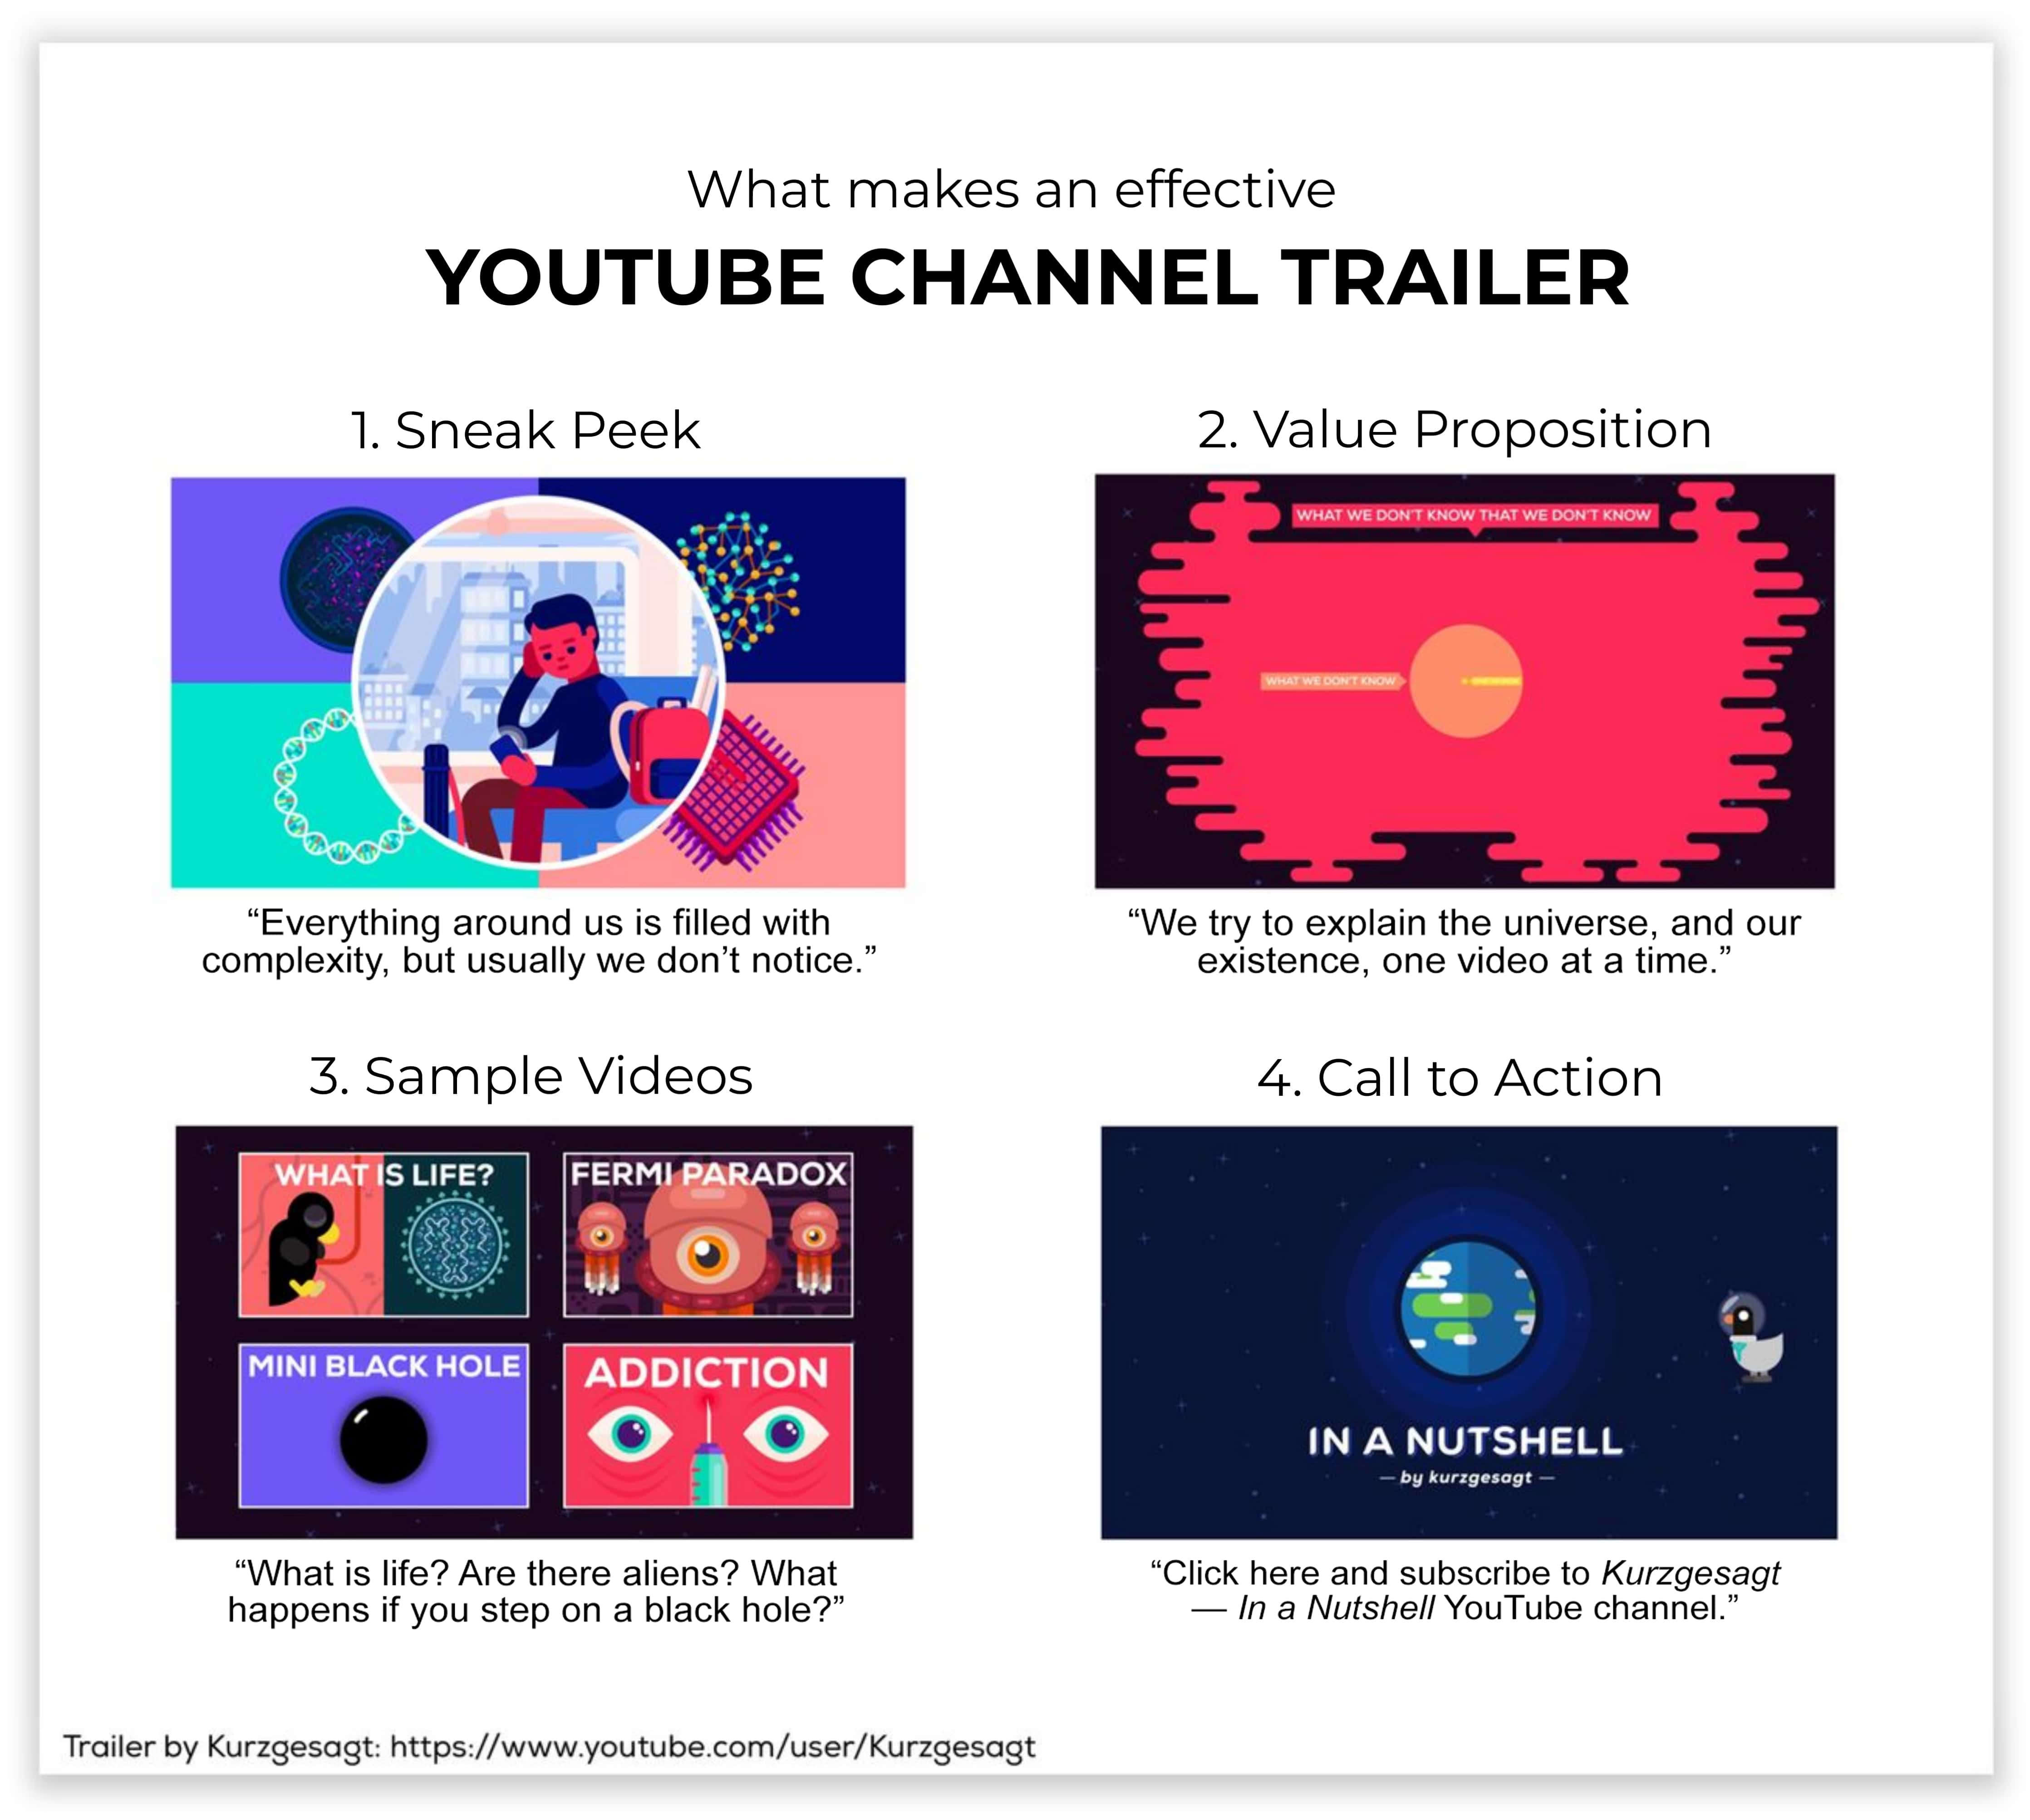 youtube channel trailer tips